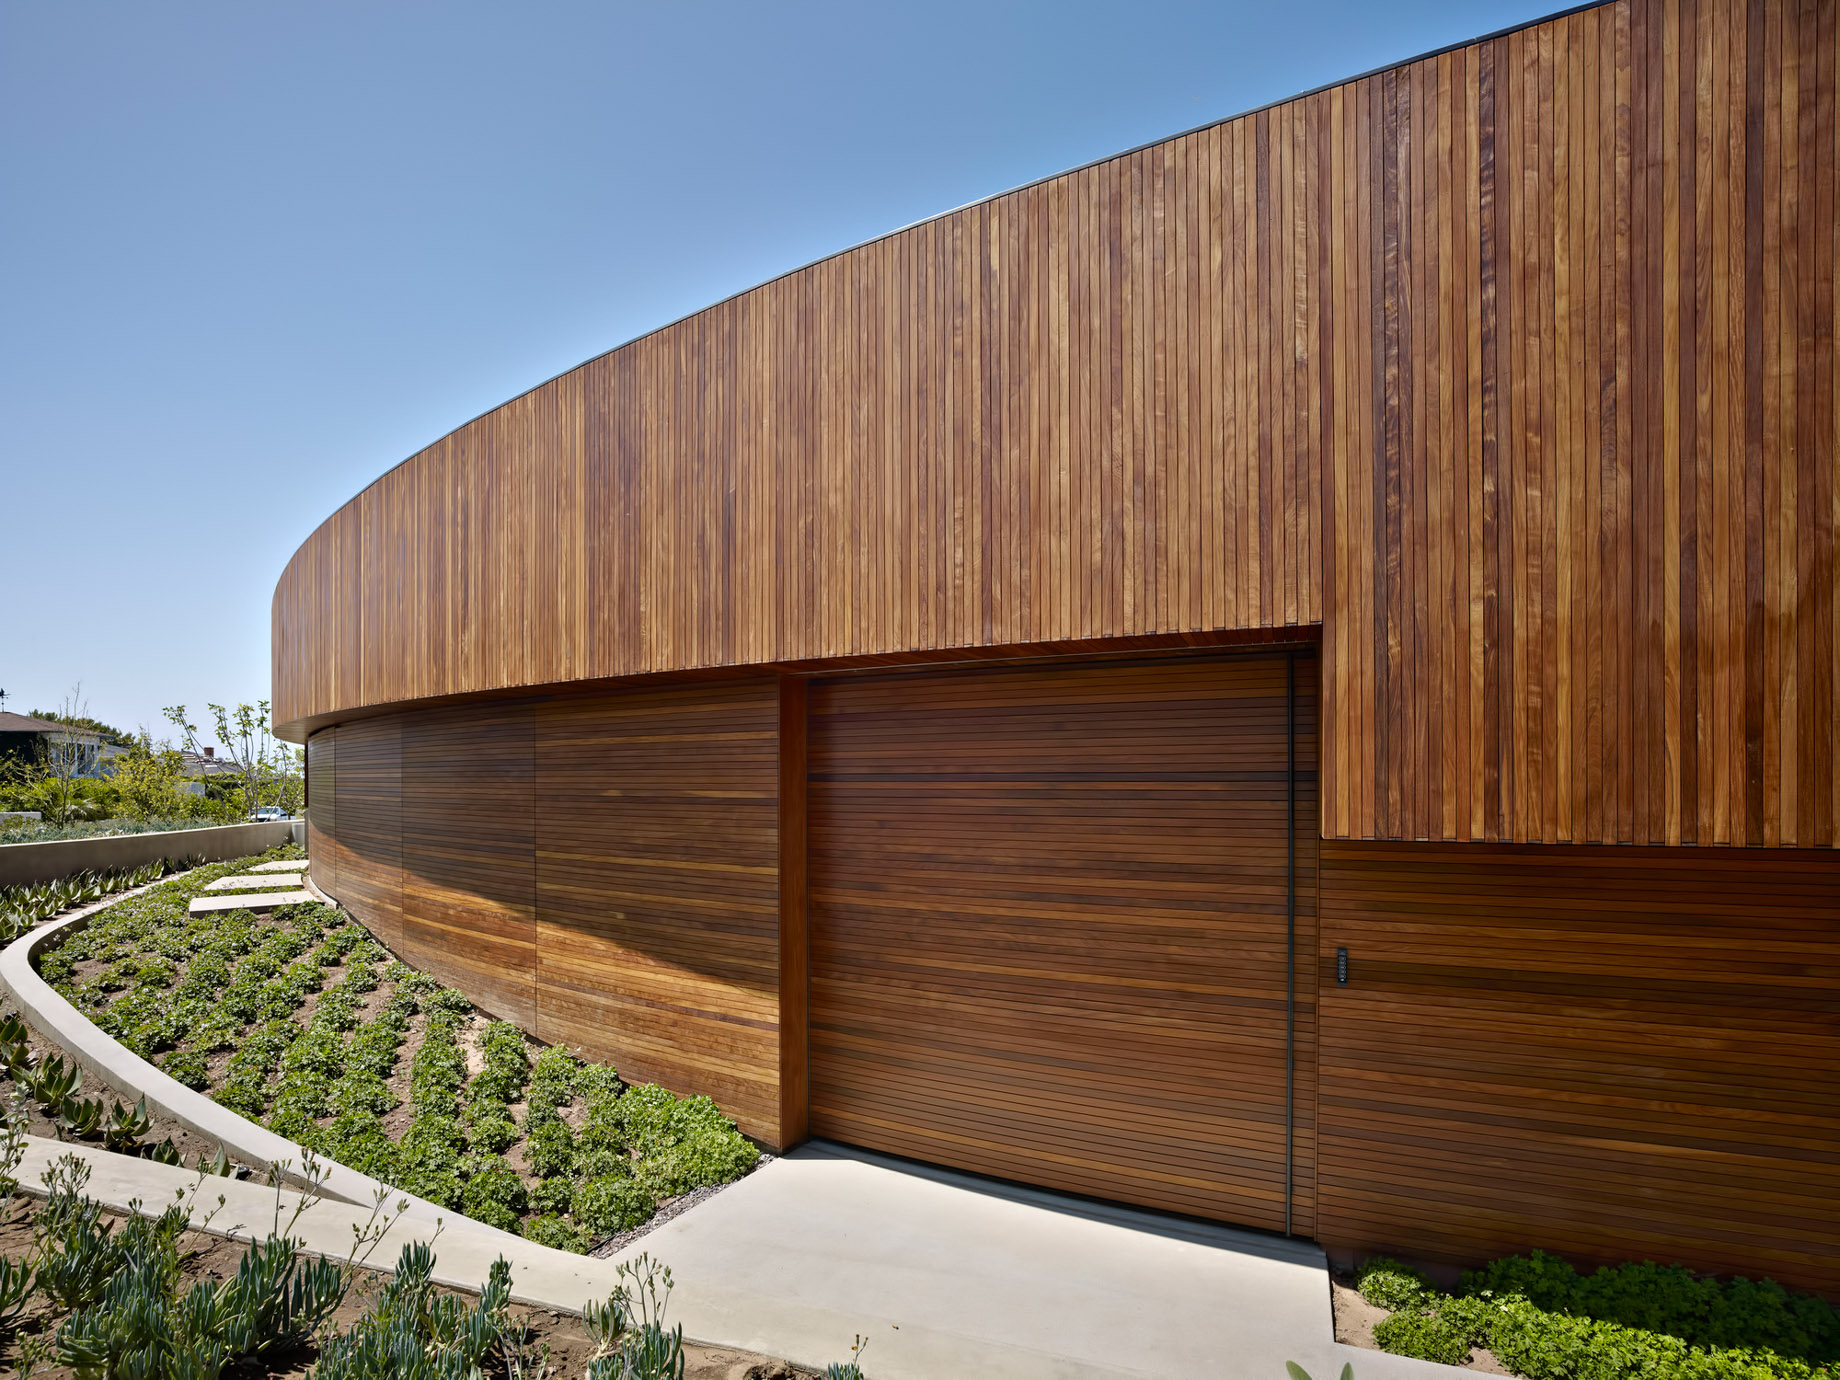 Ziering Residence – Tranquillo Rd, Pacific Palisades, CA, USA